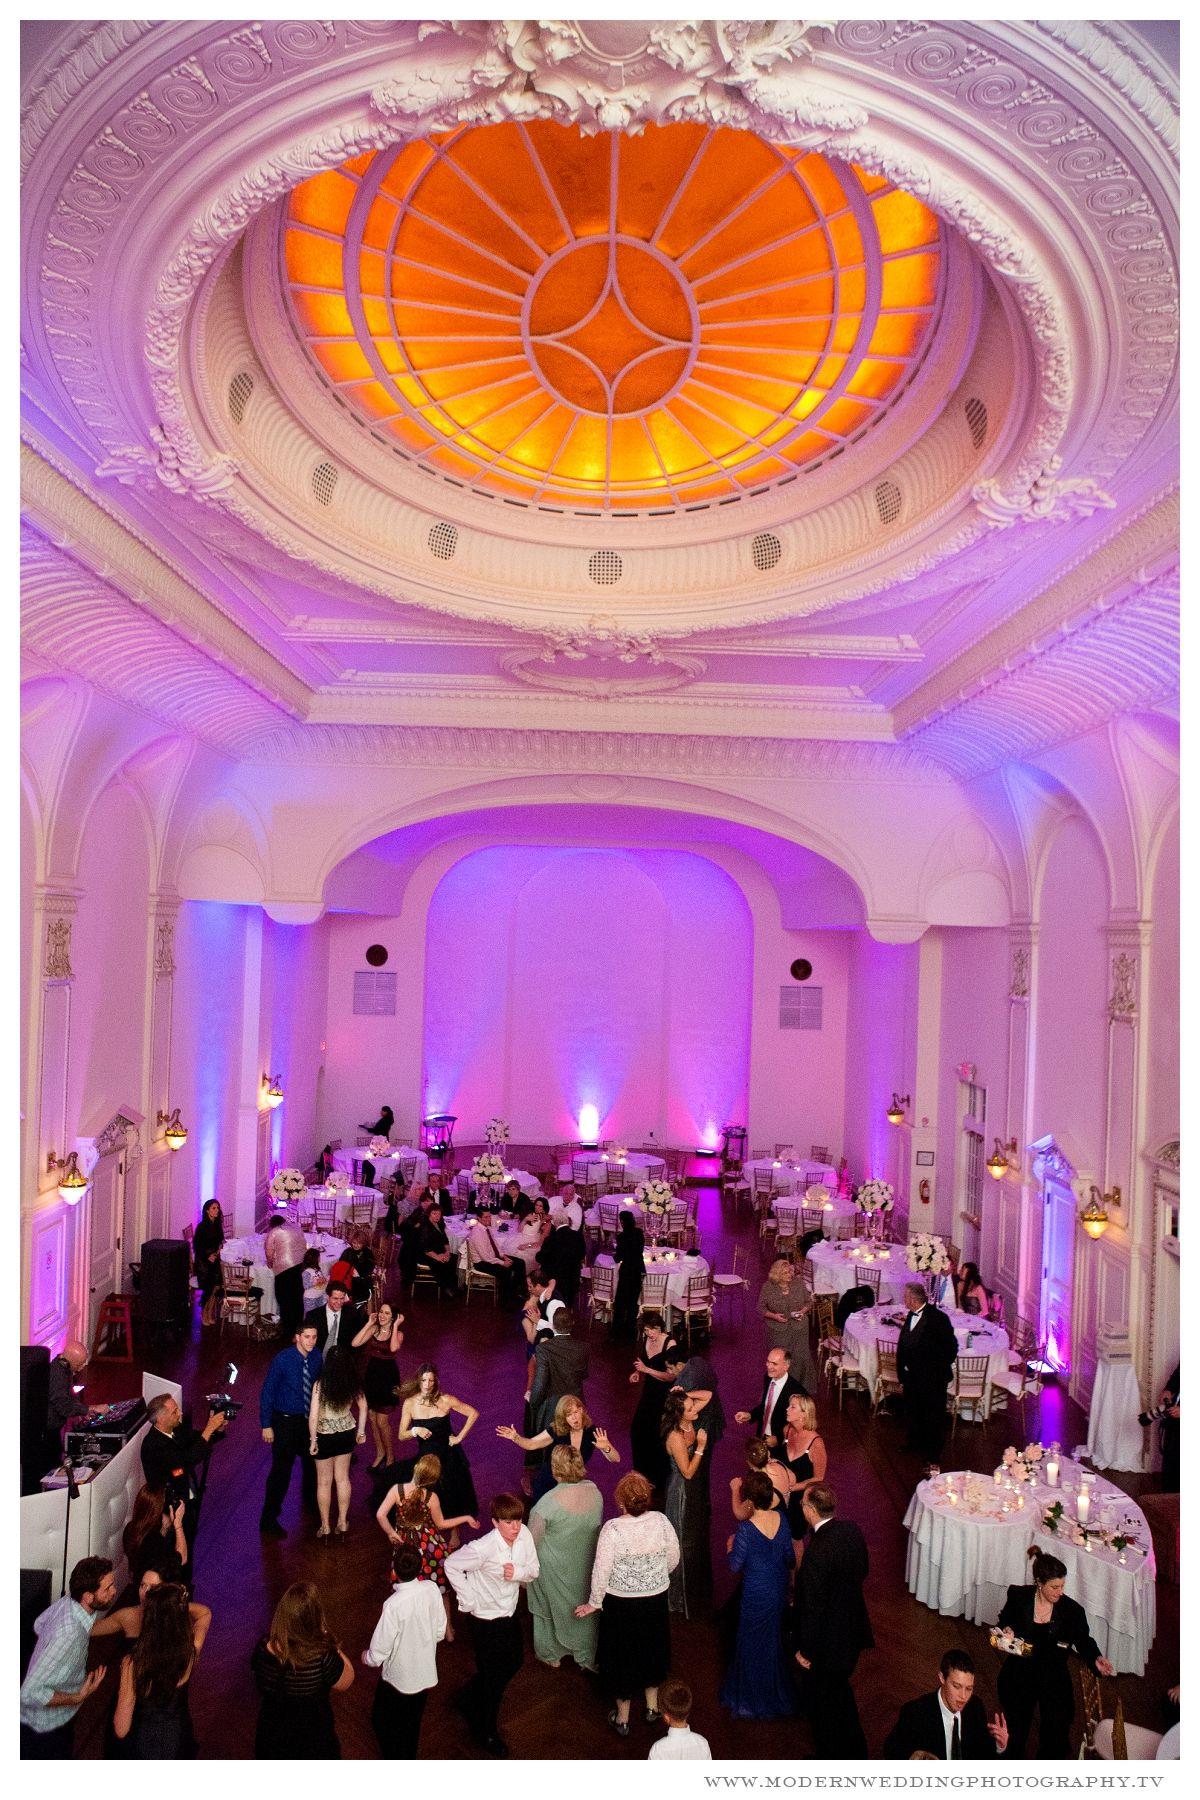 The Mansion Wedding In 2020 Wedding Venues Long Island New York Wedding Venues Long Island Wedding